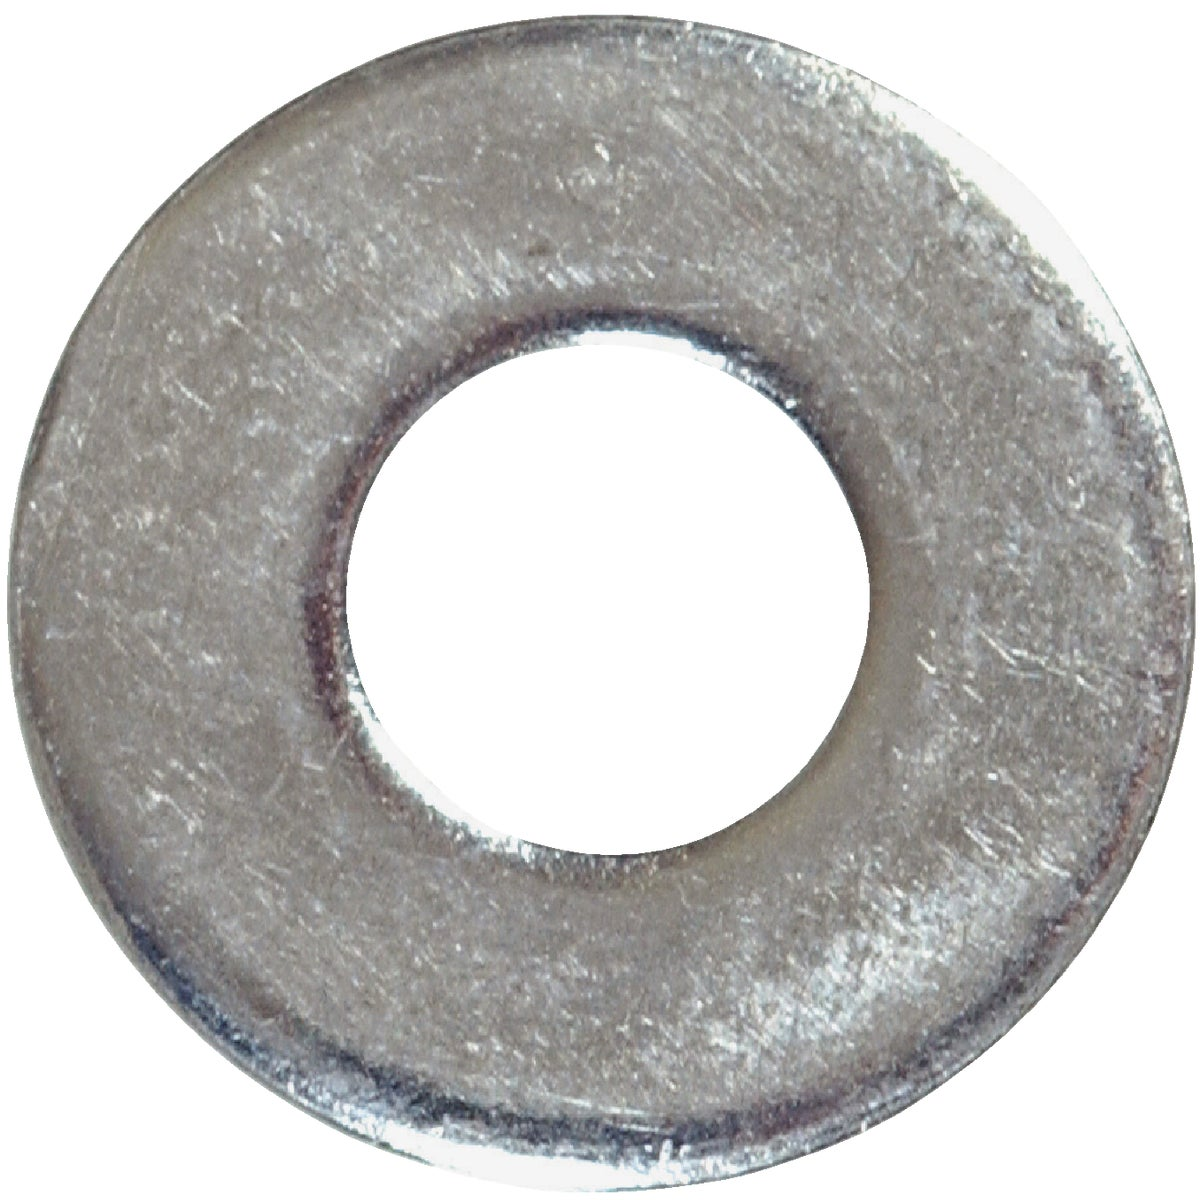 100PC #12 SAE FL WASHER - 280055 by Hillman Fastener